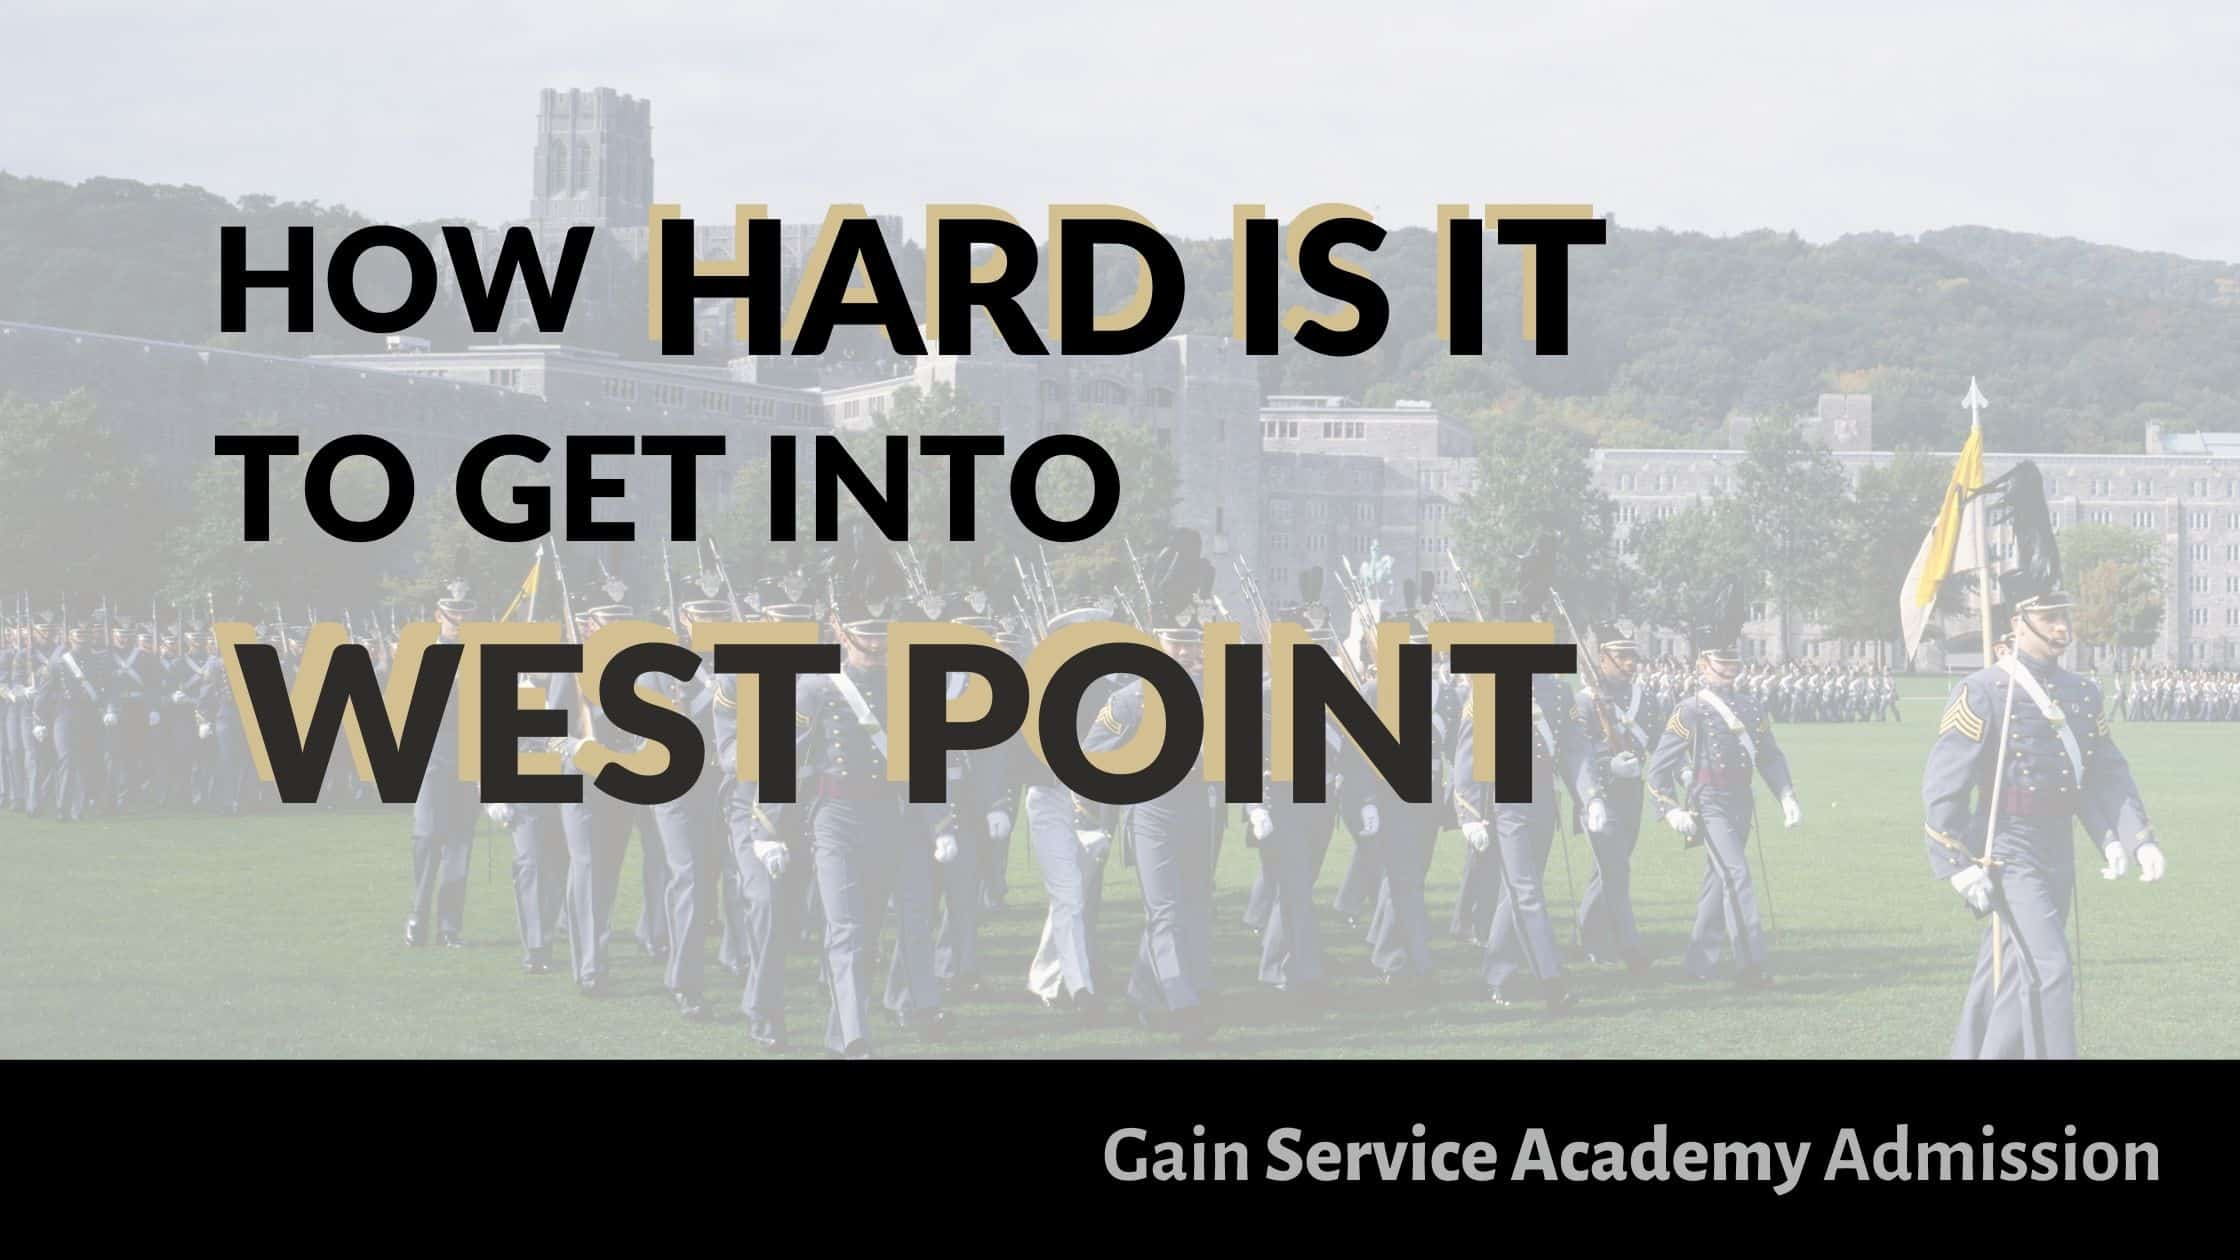 How Hard it is to get into West Point Blog Post Title